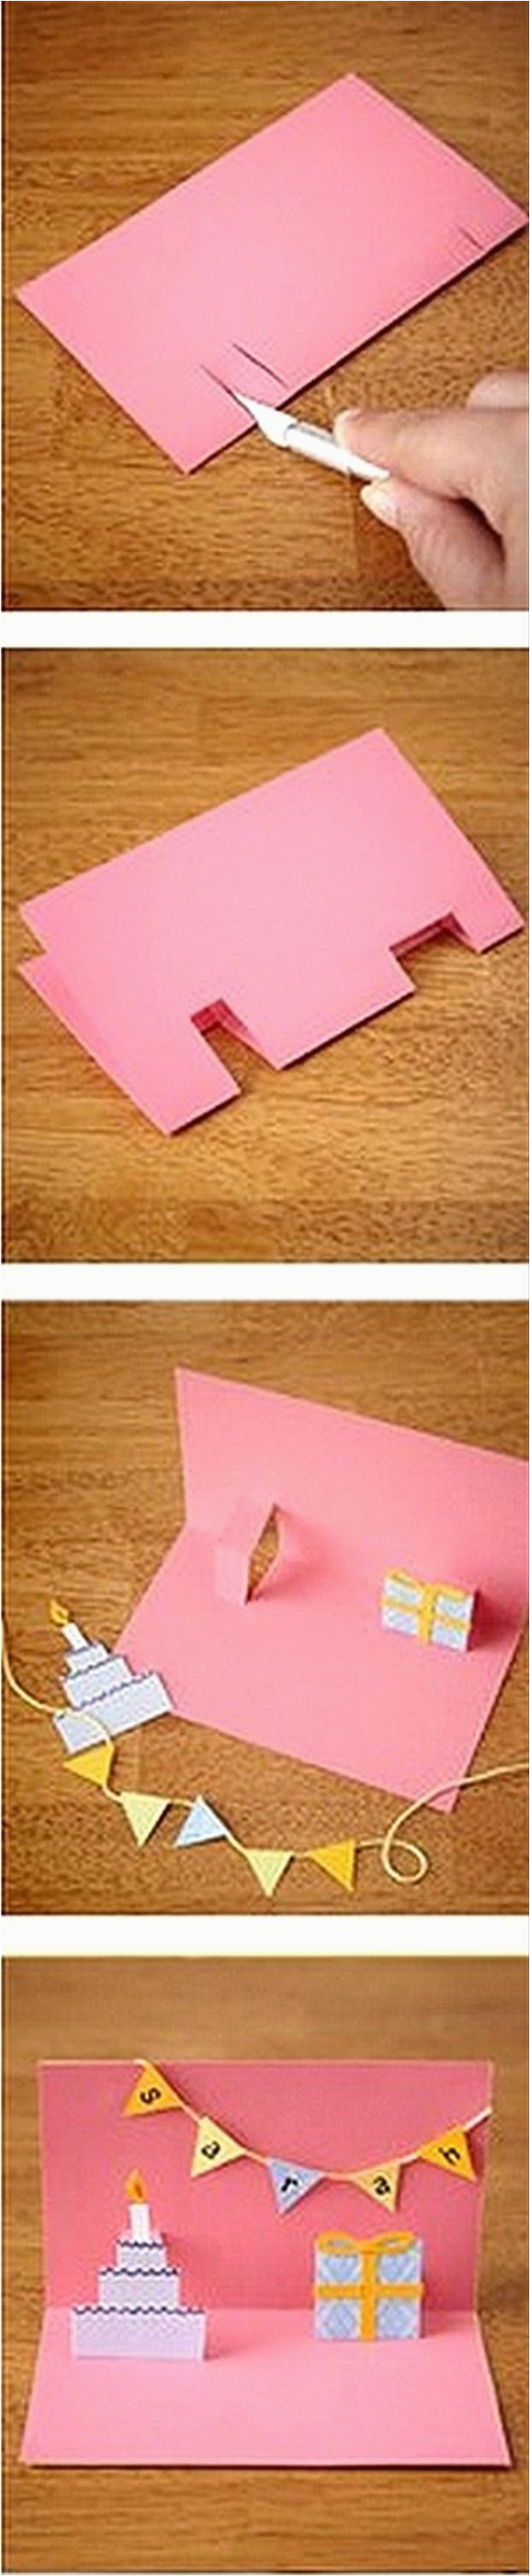 Easy Pop Up Cards for Birthdays Make A Pop Out Birthday Card Fun Crafts Dump A Day